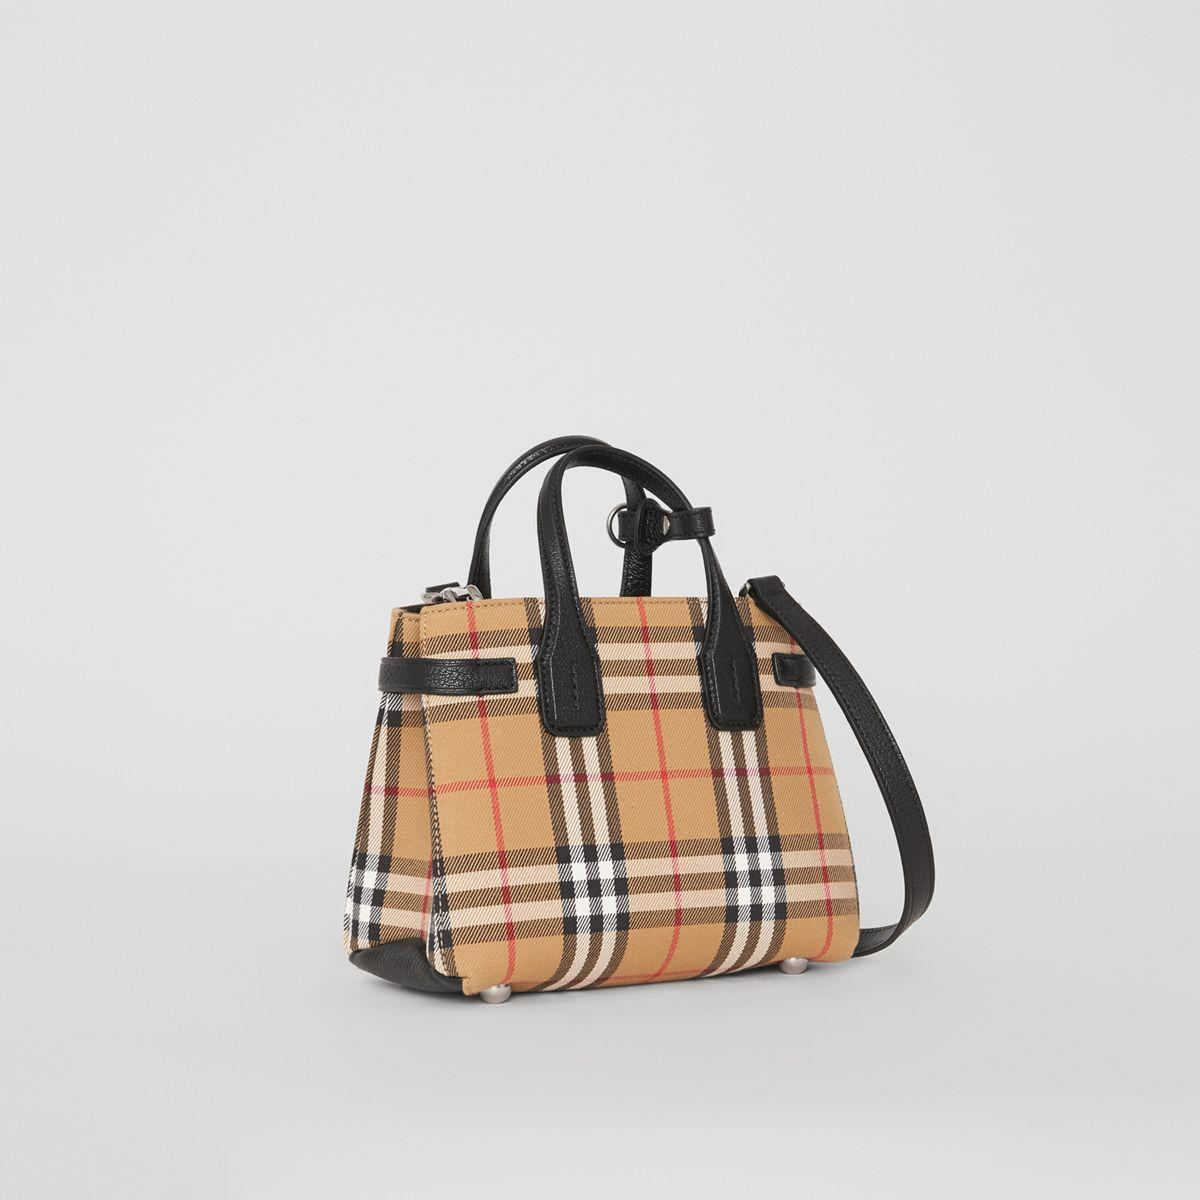 5858f7f8242 Lyst - Sac The Baby Banner en tissu Vintage check et cuir Burberry